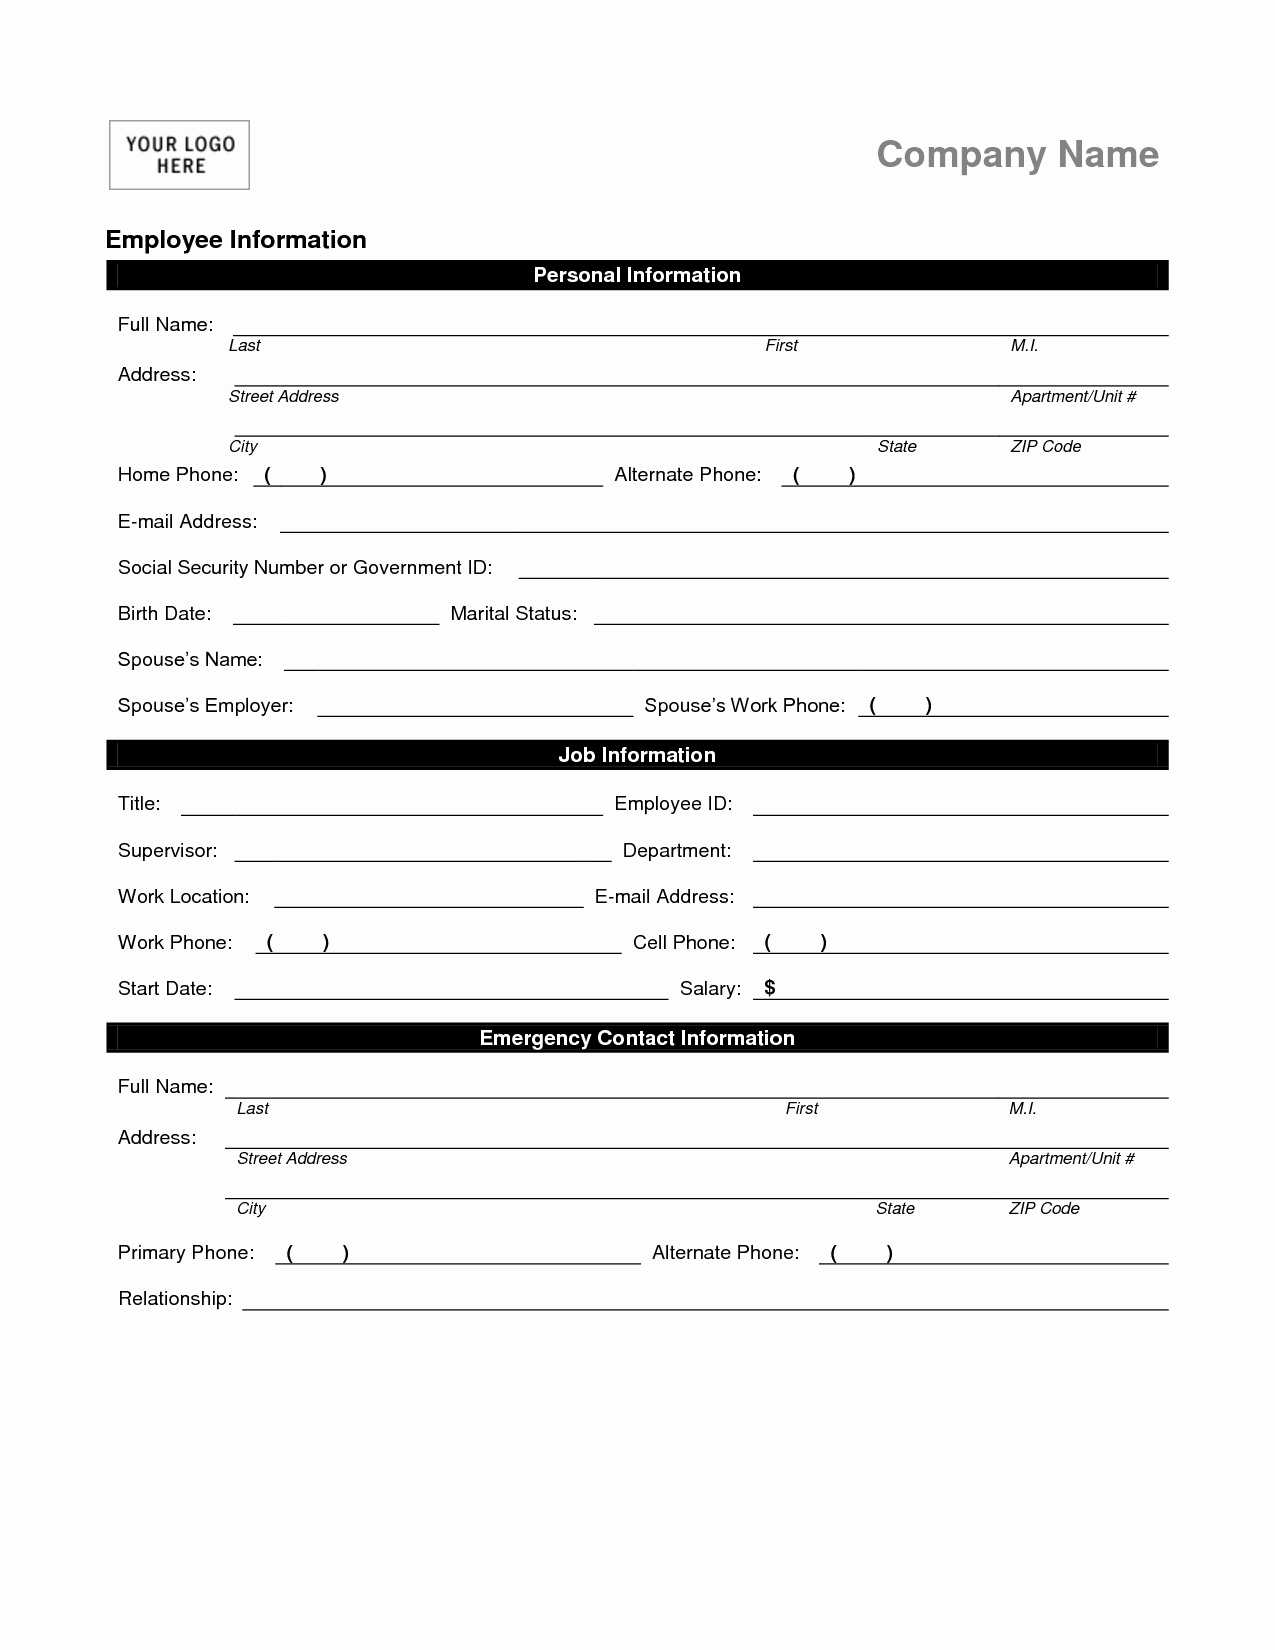 Personal Information Template Excel Best Of Employee Personal Information form Template